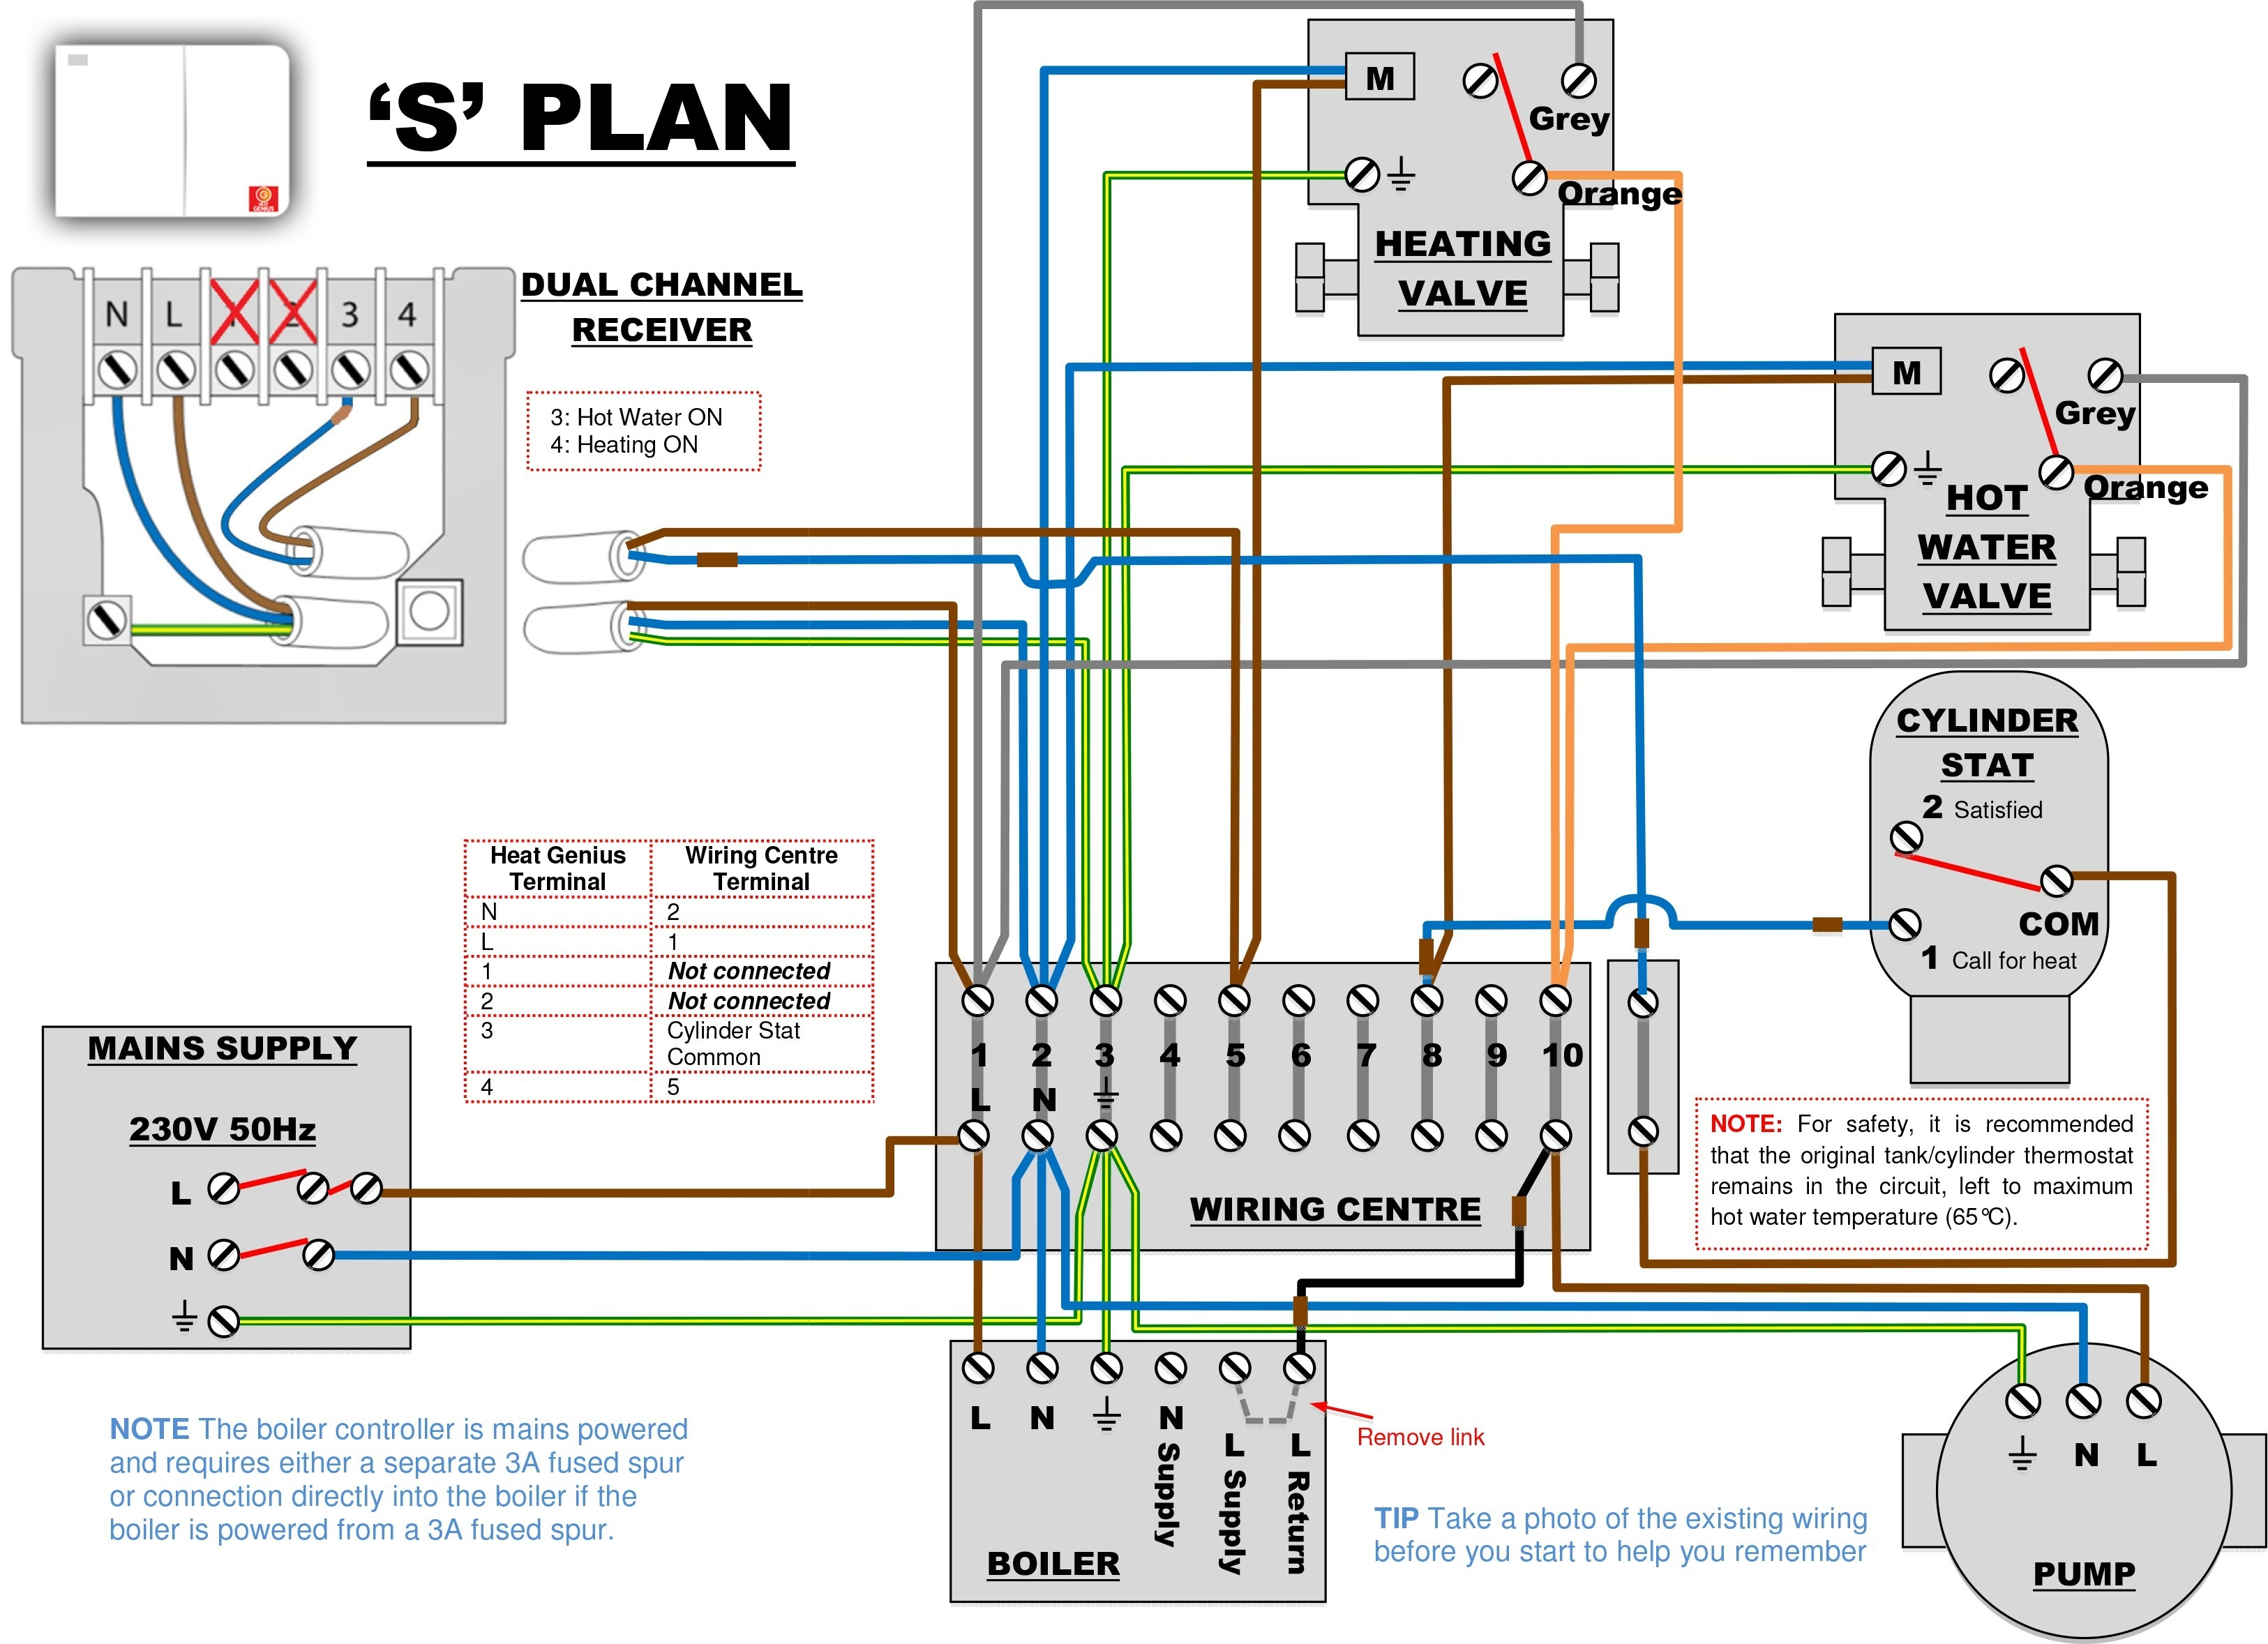 Nest Thermostat Wiring Diagram For Carrier Infinity - Wiring - Nest Thermostat Heat Pump Wiring Diagram